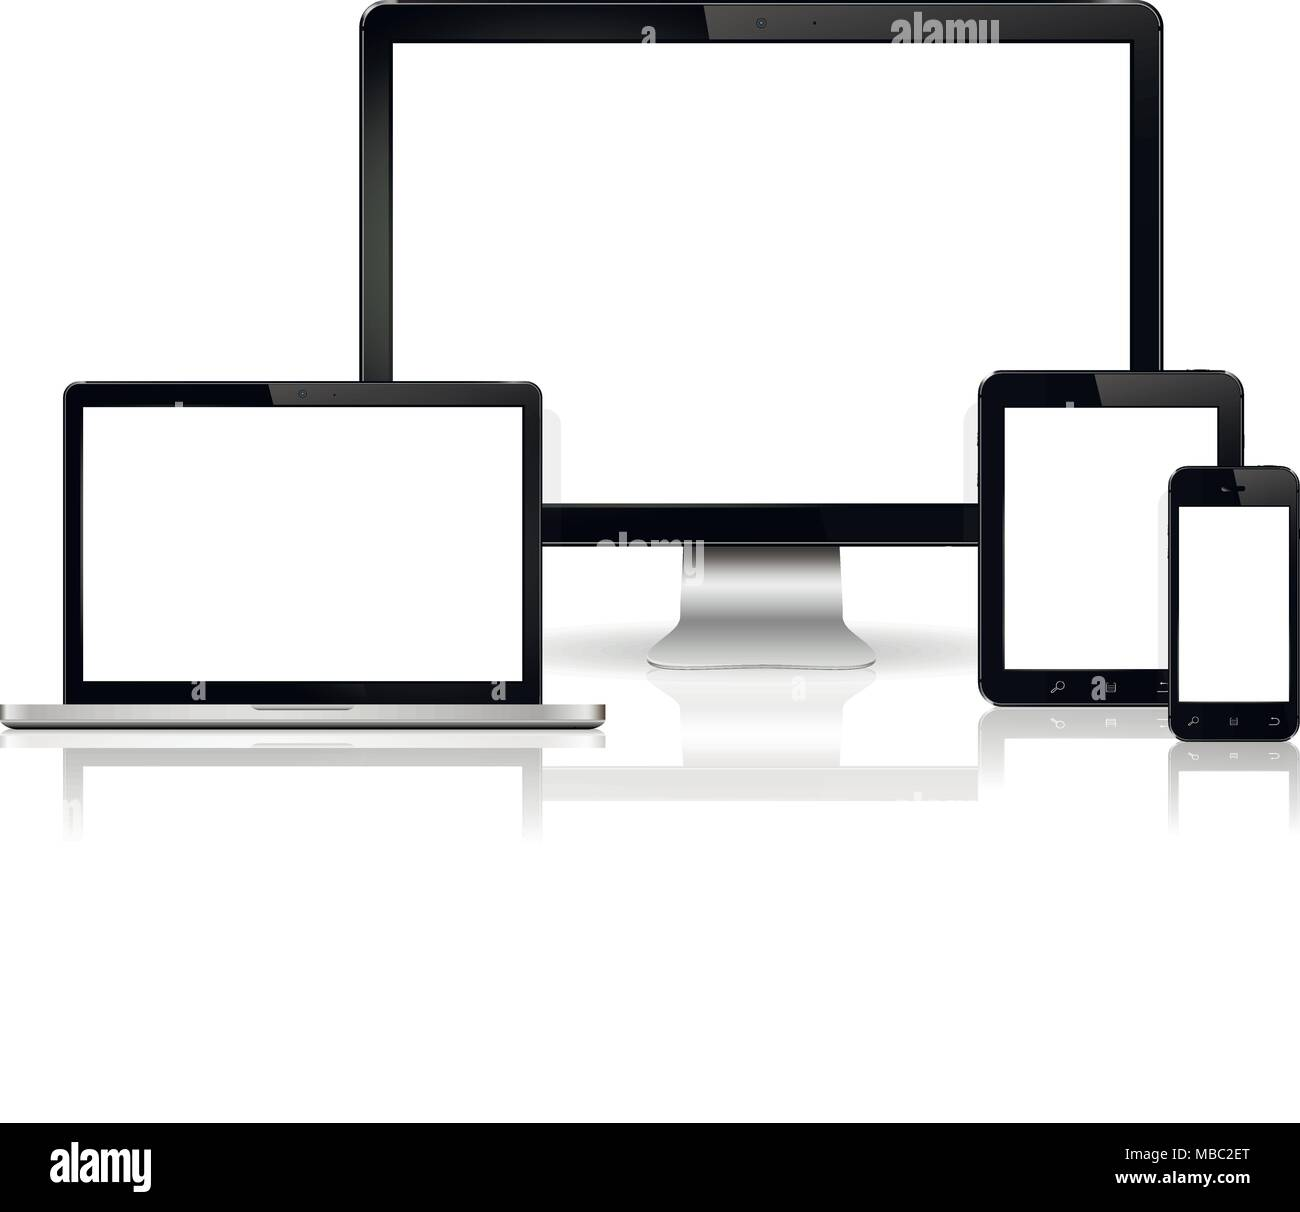 Modern digital display, laptop, tablet and mobile phone with blank screen. Isolated on white background. Vector illustration. - Stock Image